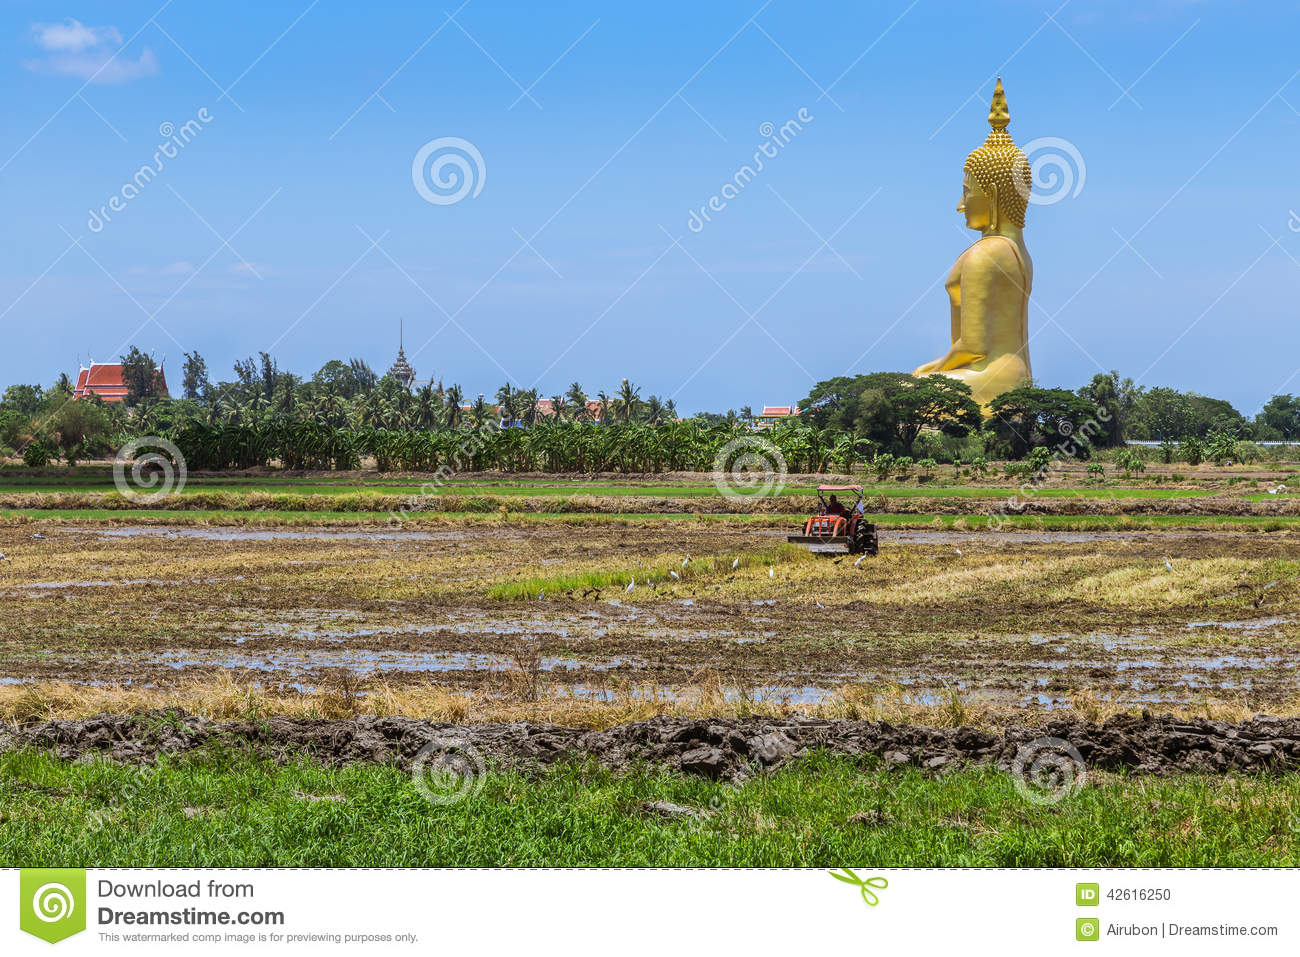 golden meadow buddhist dating site As an extremely rare geological phenomenon dating back to 270 apart from fine depictions of buddhist deities drive out to the yak meadow of the jade.